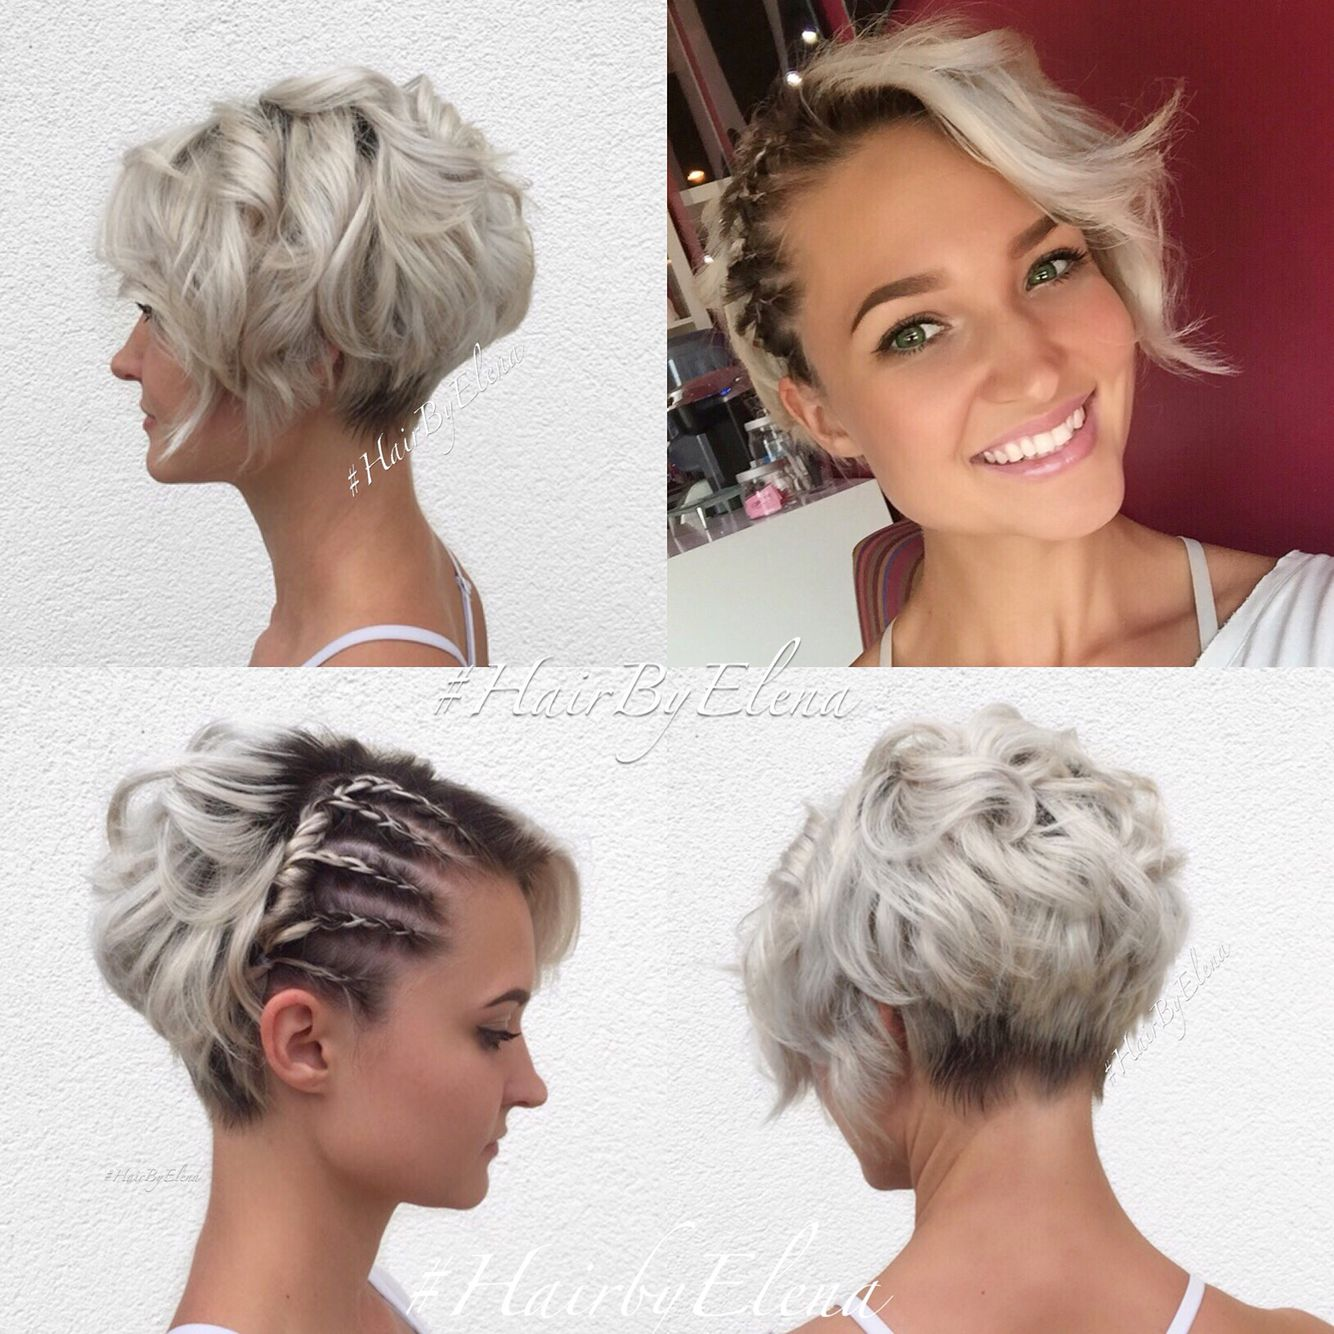 Pixie Hairstyles For Wedding: Pixie , Bob ,blonde, Short Haircut #hairbyelena